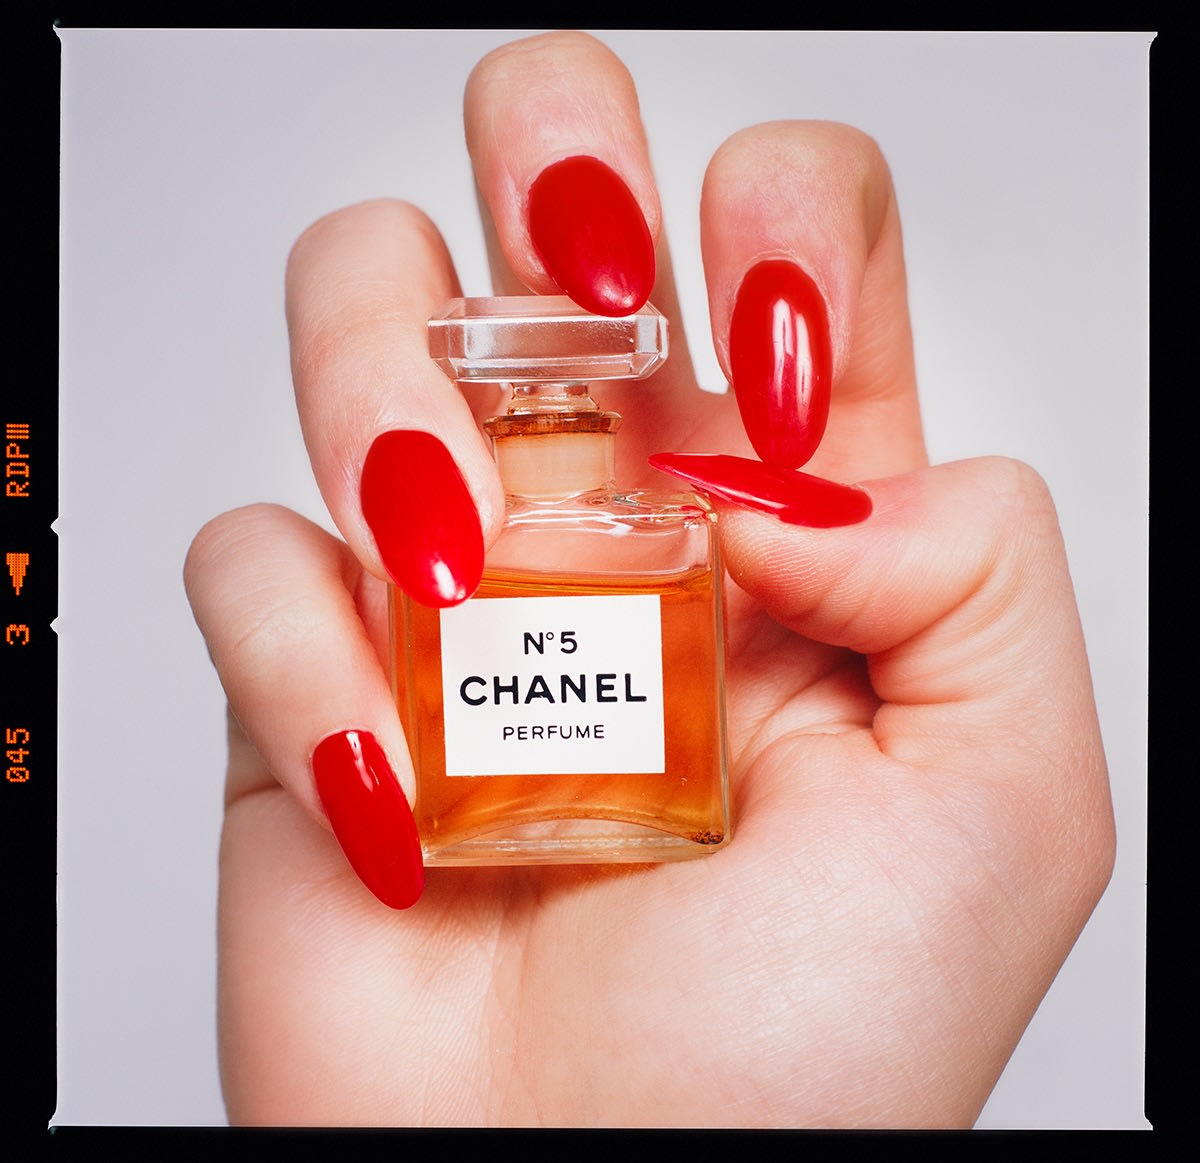 Chanel Hand by Tyler Shields